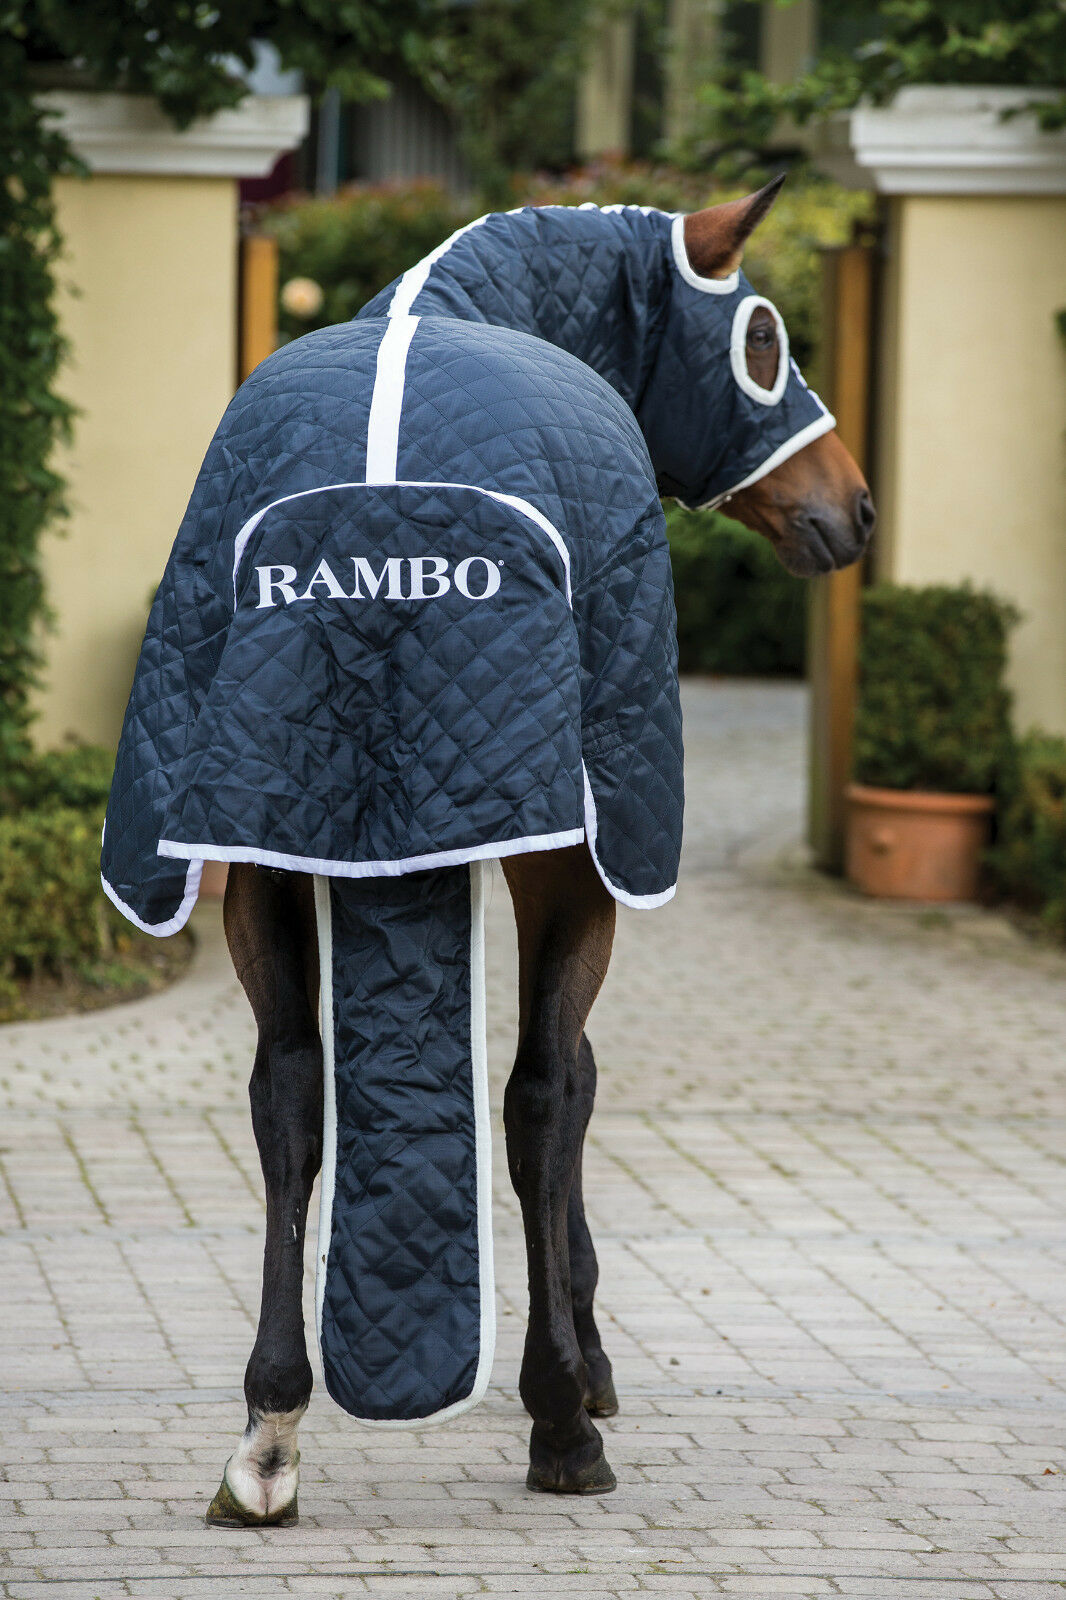 Horseware Rambo SHOW Combo SET RUG 100g Competition Ready Cooler/Stable/Travel Combo SHOW 464810